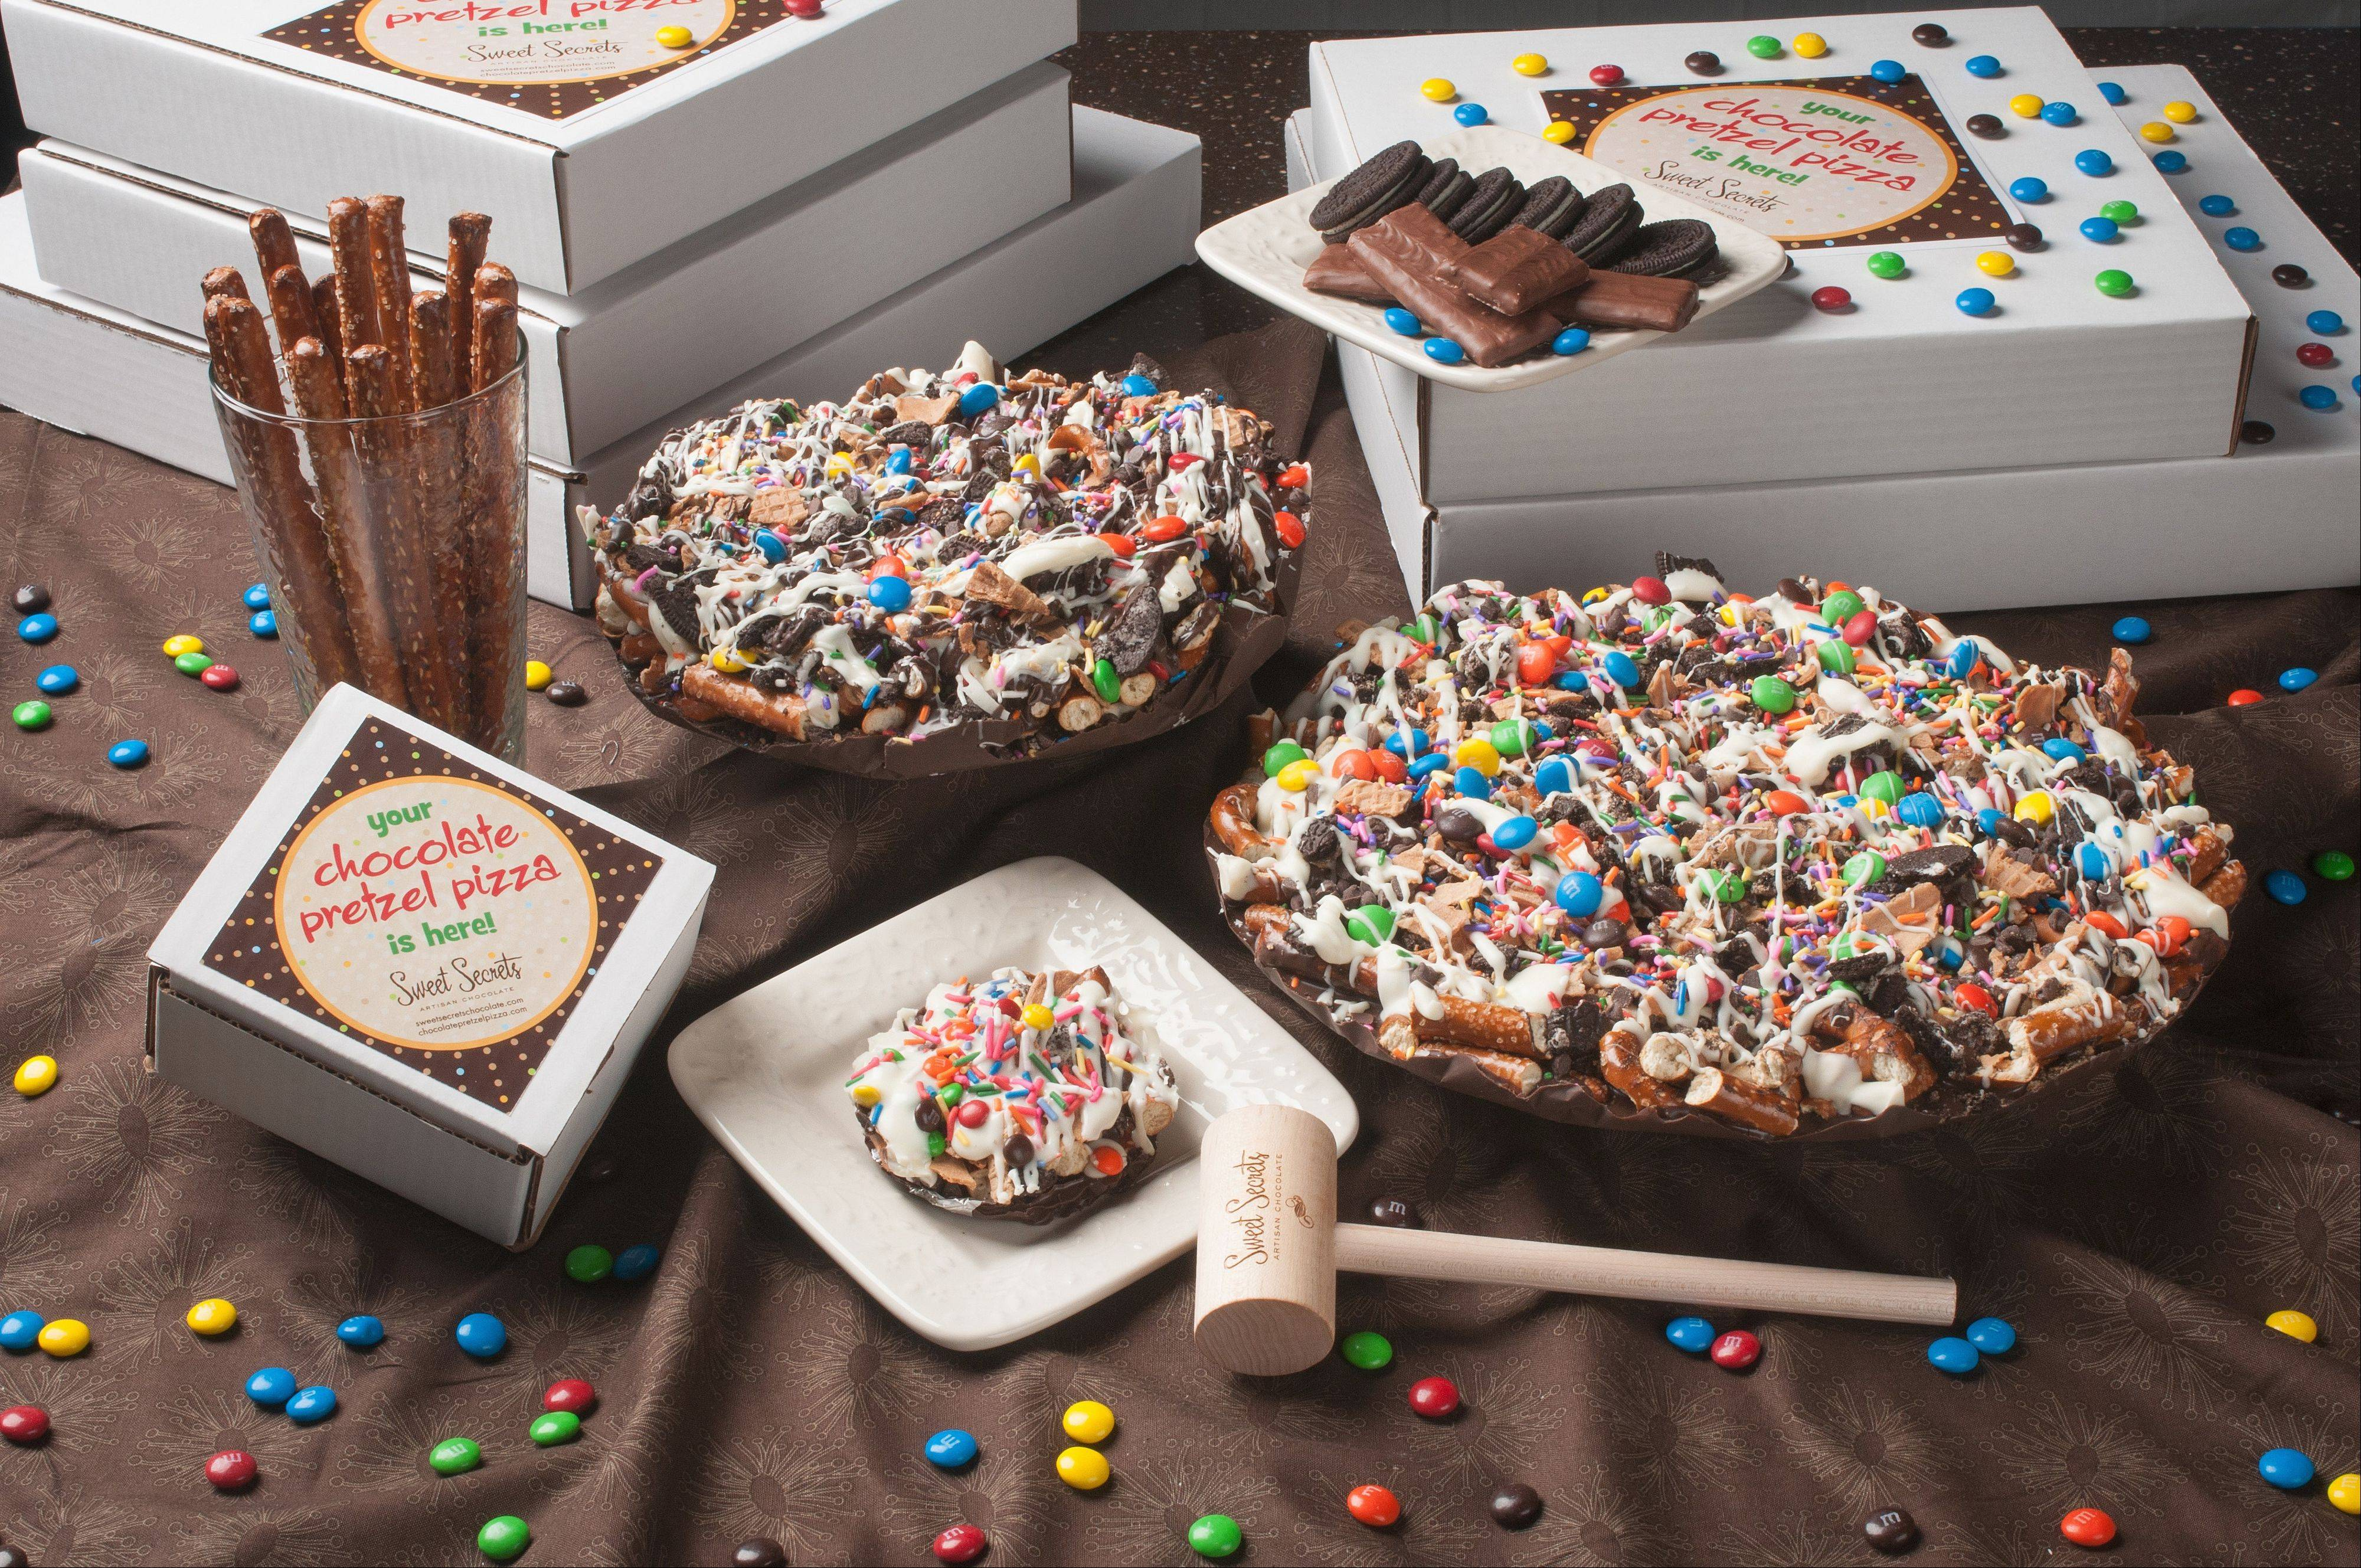 Chocolate Pretzel Pizzas from Wheaton�s Sweet Secrets Chocolate are a finalist for Best New Product at the Chicago Fine Chocolate and Dessert Show at Navy Pier later this month.